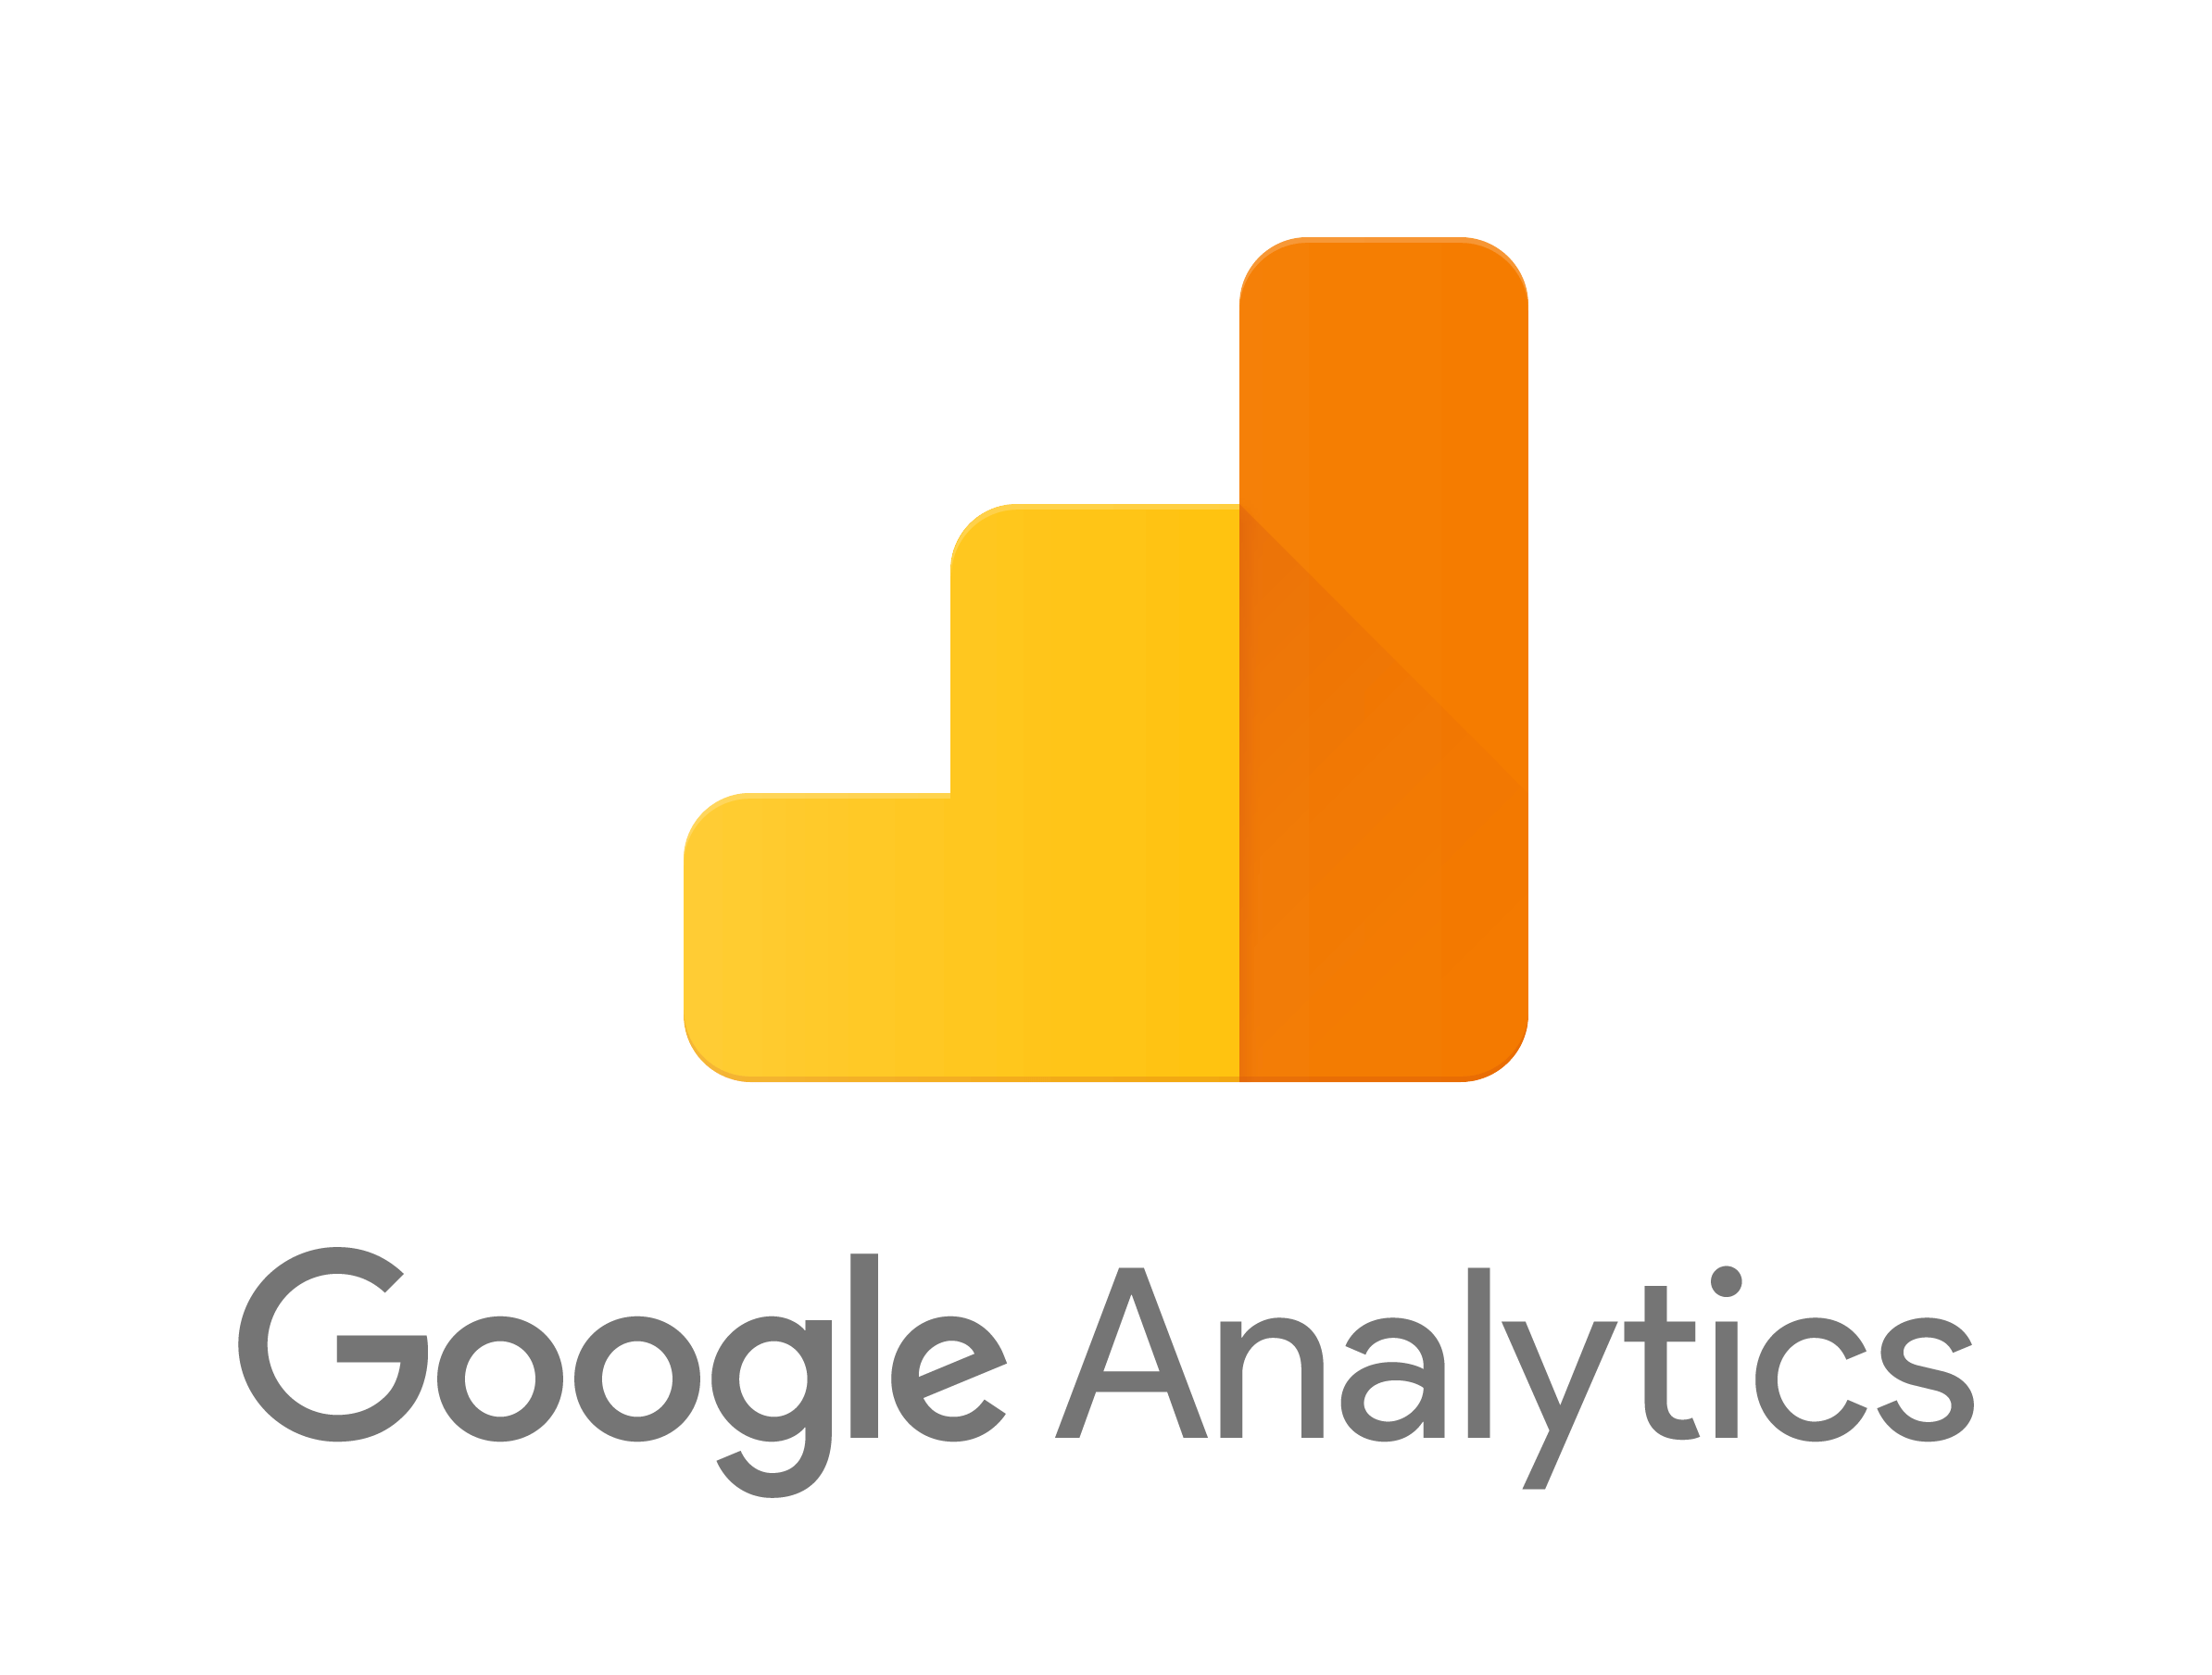 Stop-Google-Analytics-From-Tracking-My-Visits-2018